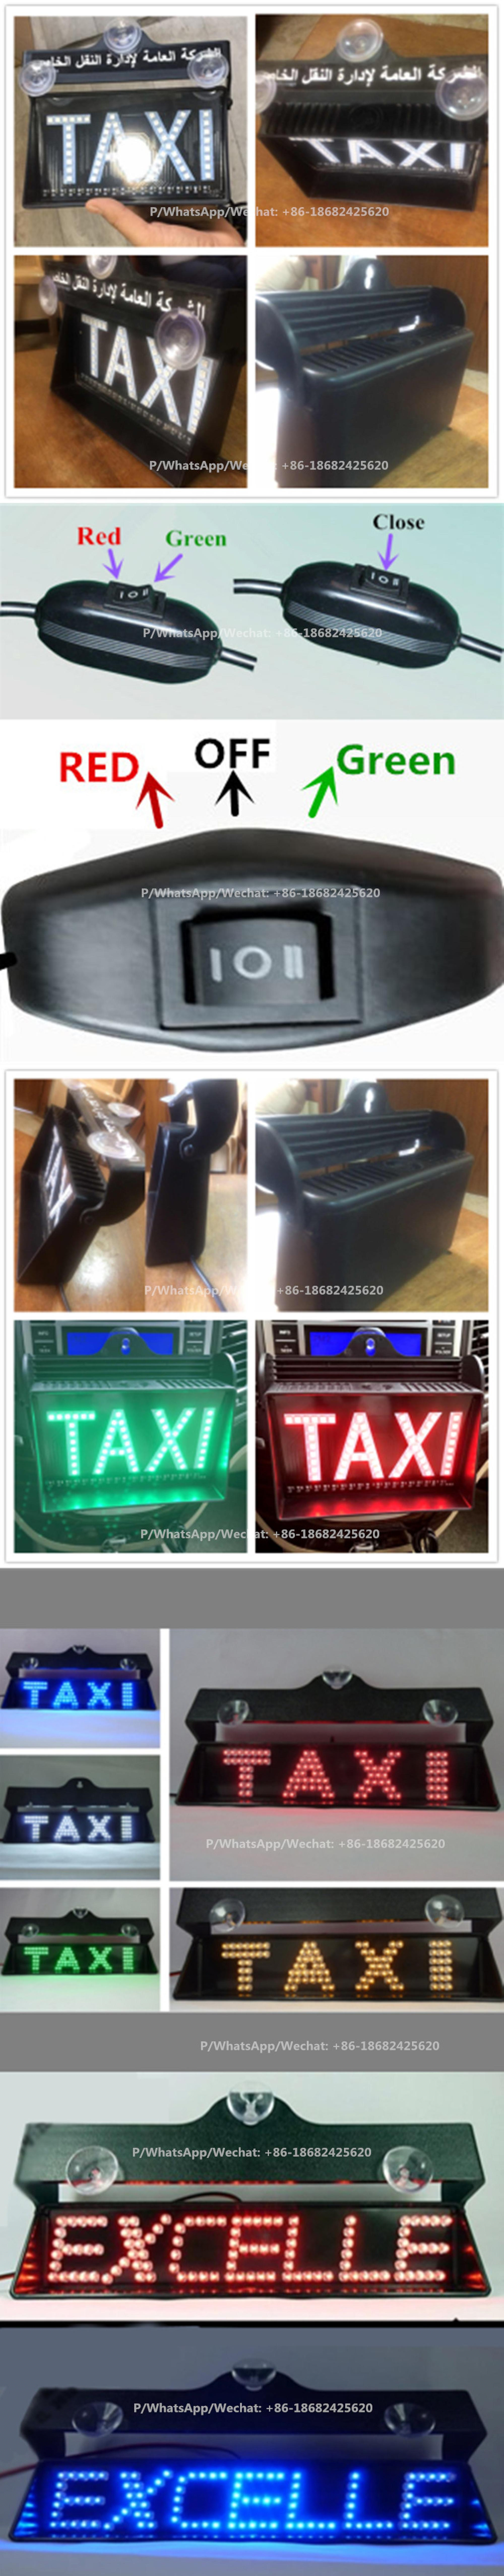 Sucker For Glass Window Car Passenger Busy And Free State Adjustable Bracket RED Green TAXI LED Sign Board Factory